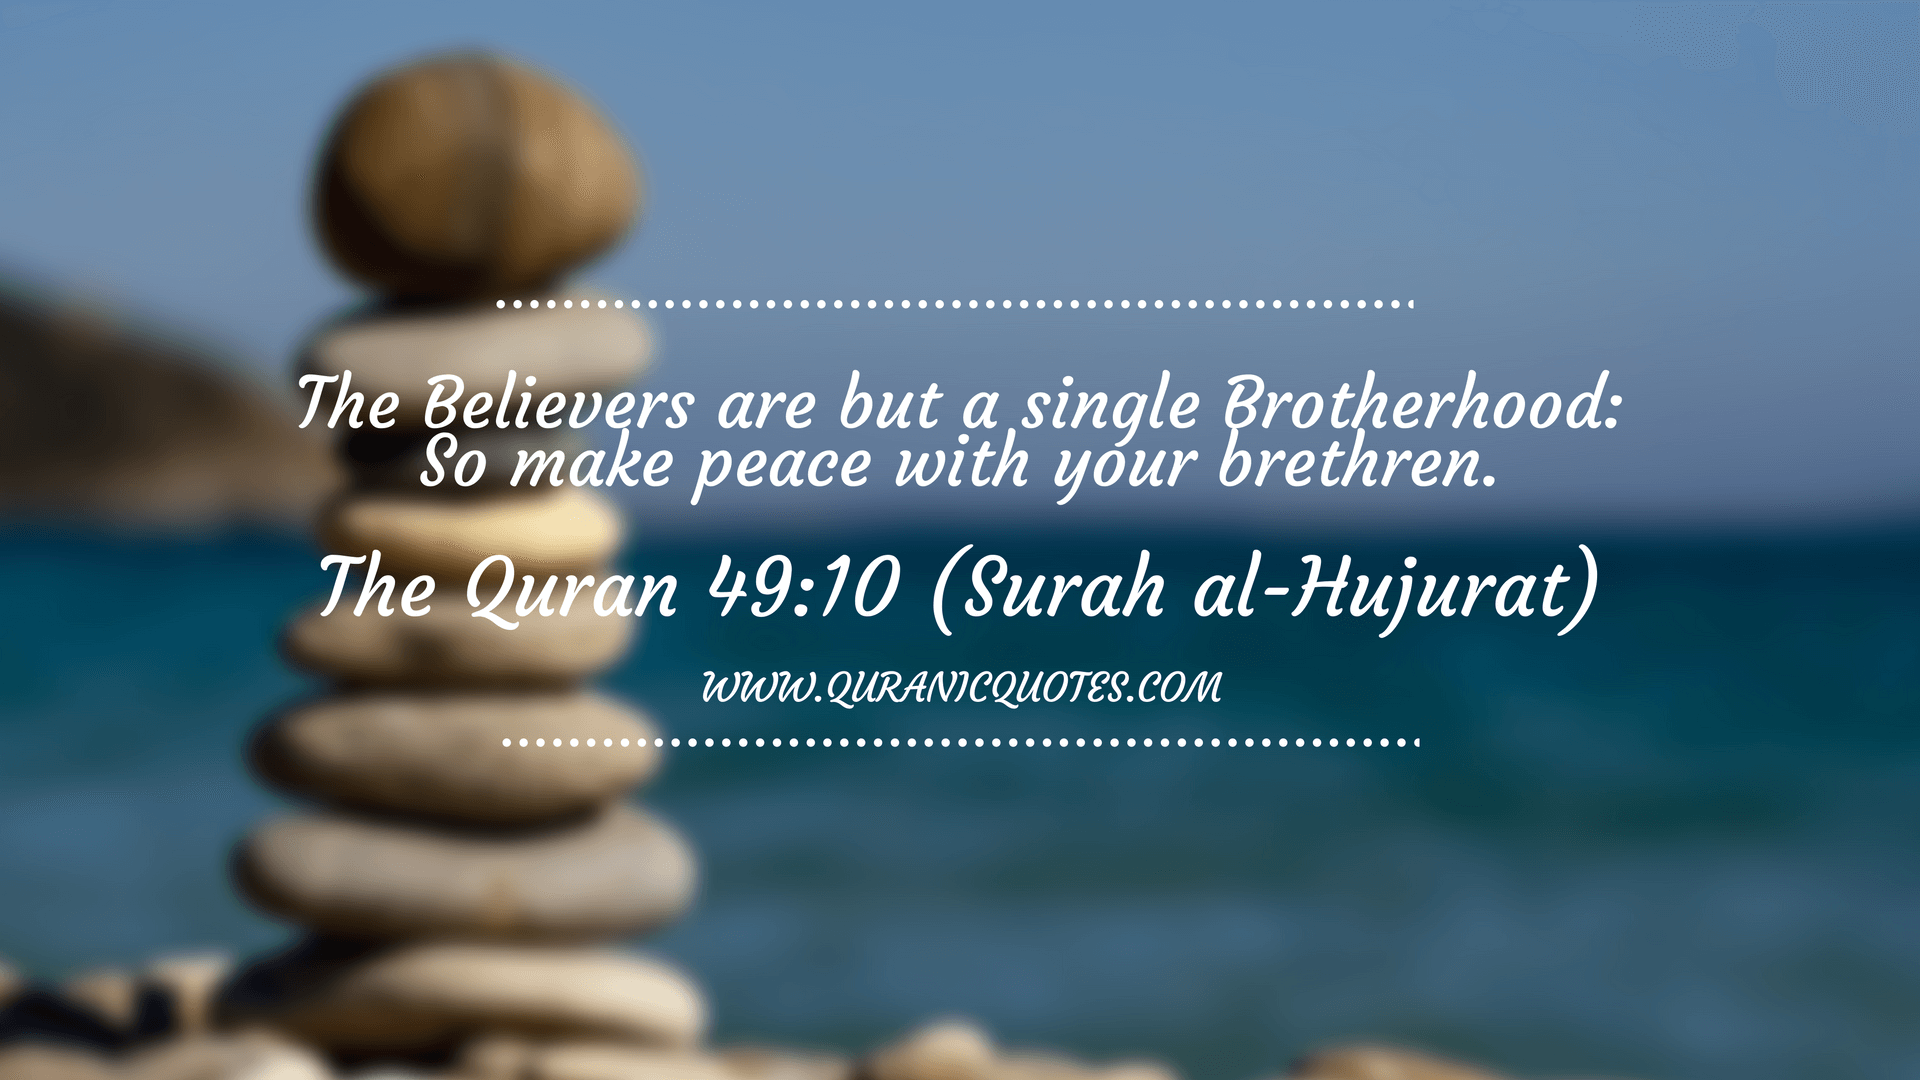 Free Download Quran Ayat Wallpaper 56 Group Wallpapers 1920x1080 For Your Desktop Mobile Tablet Explore 41 Quranic Wallpaper Quranic Wallpaper